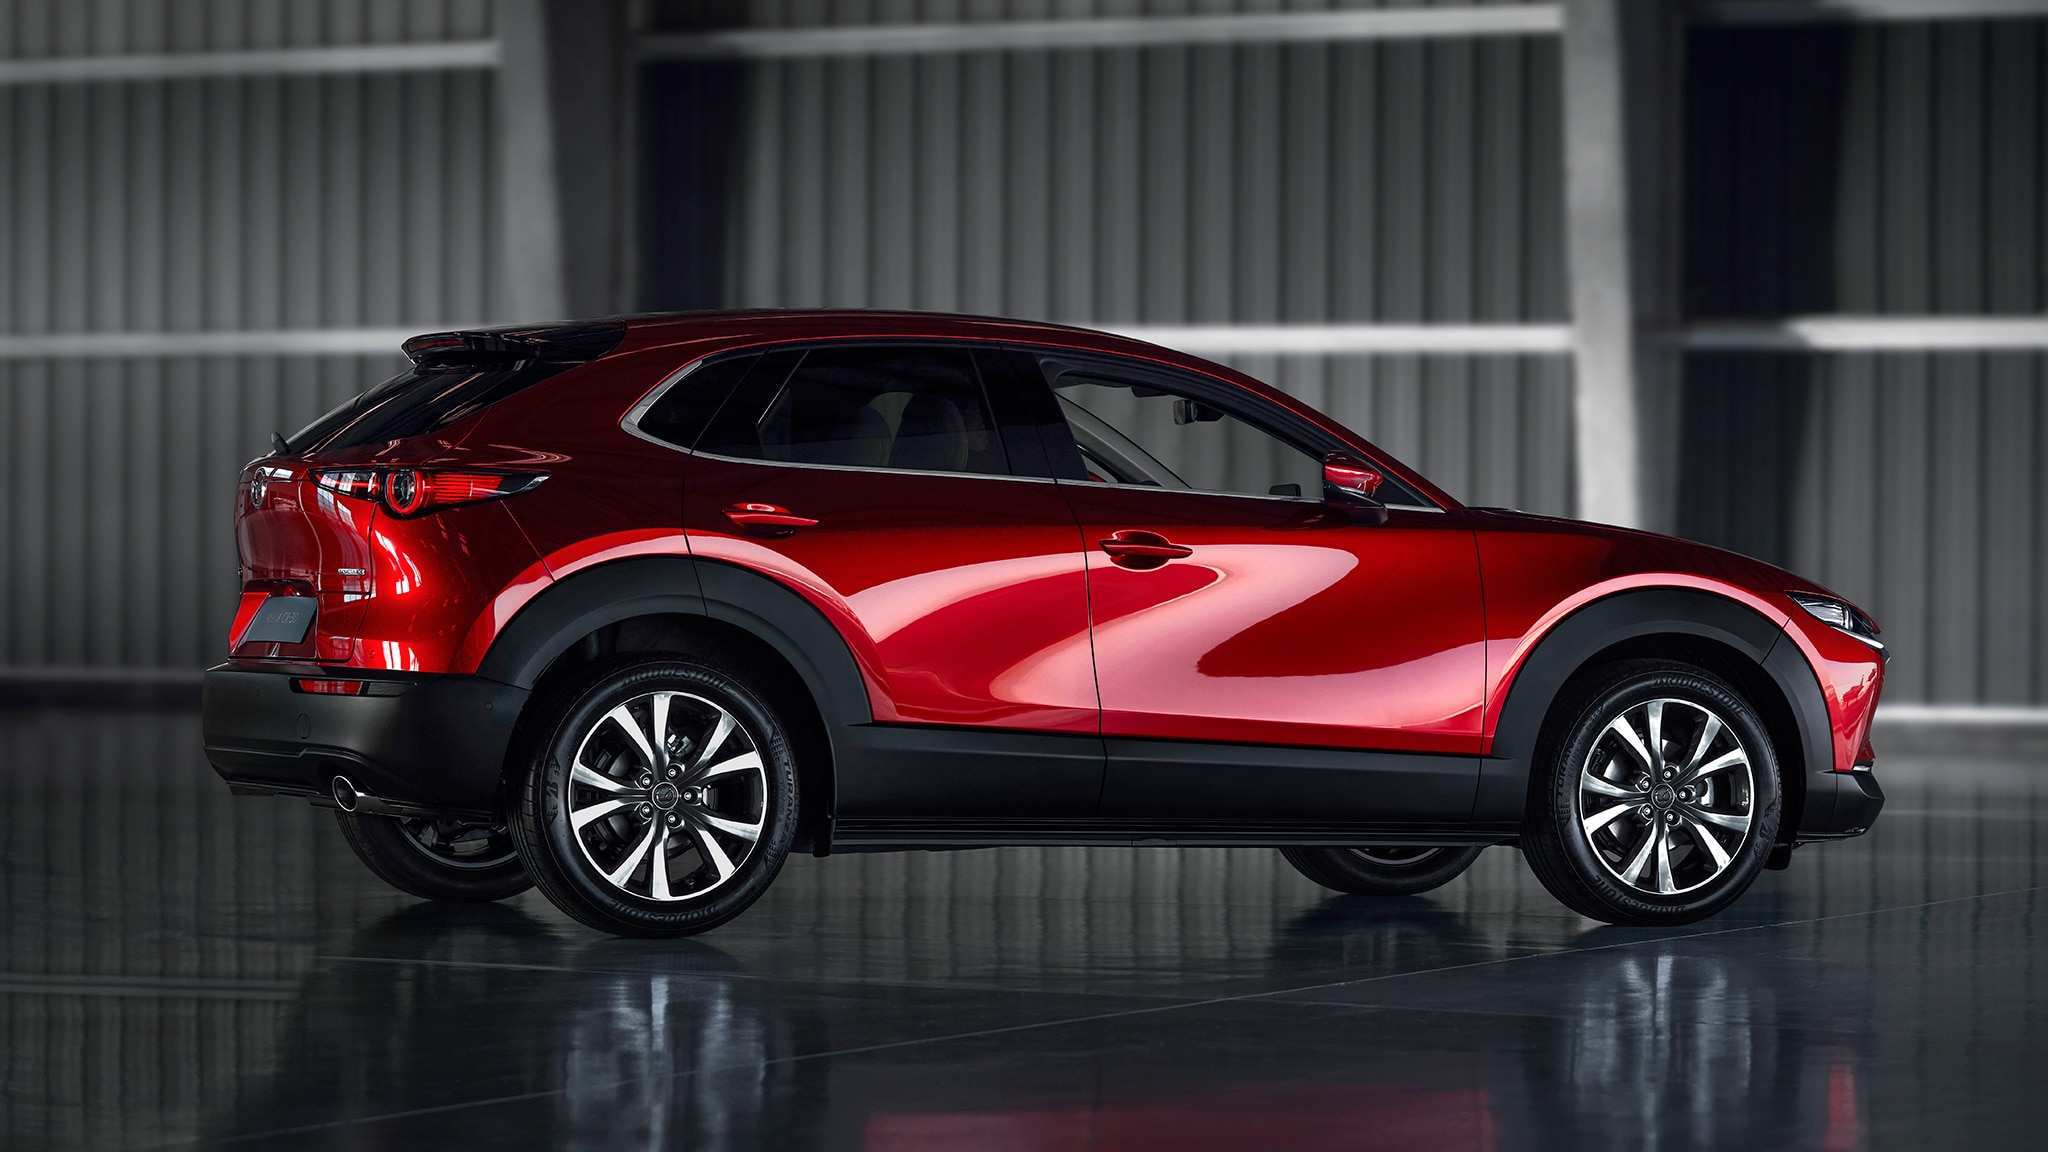 83 All New 2020 Mazda Cx 5 Model